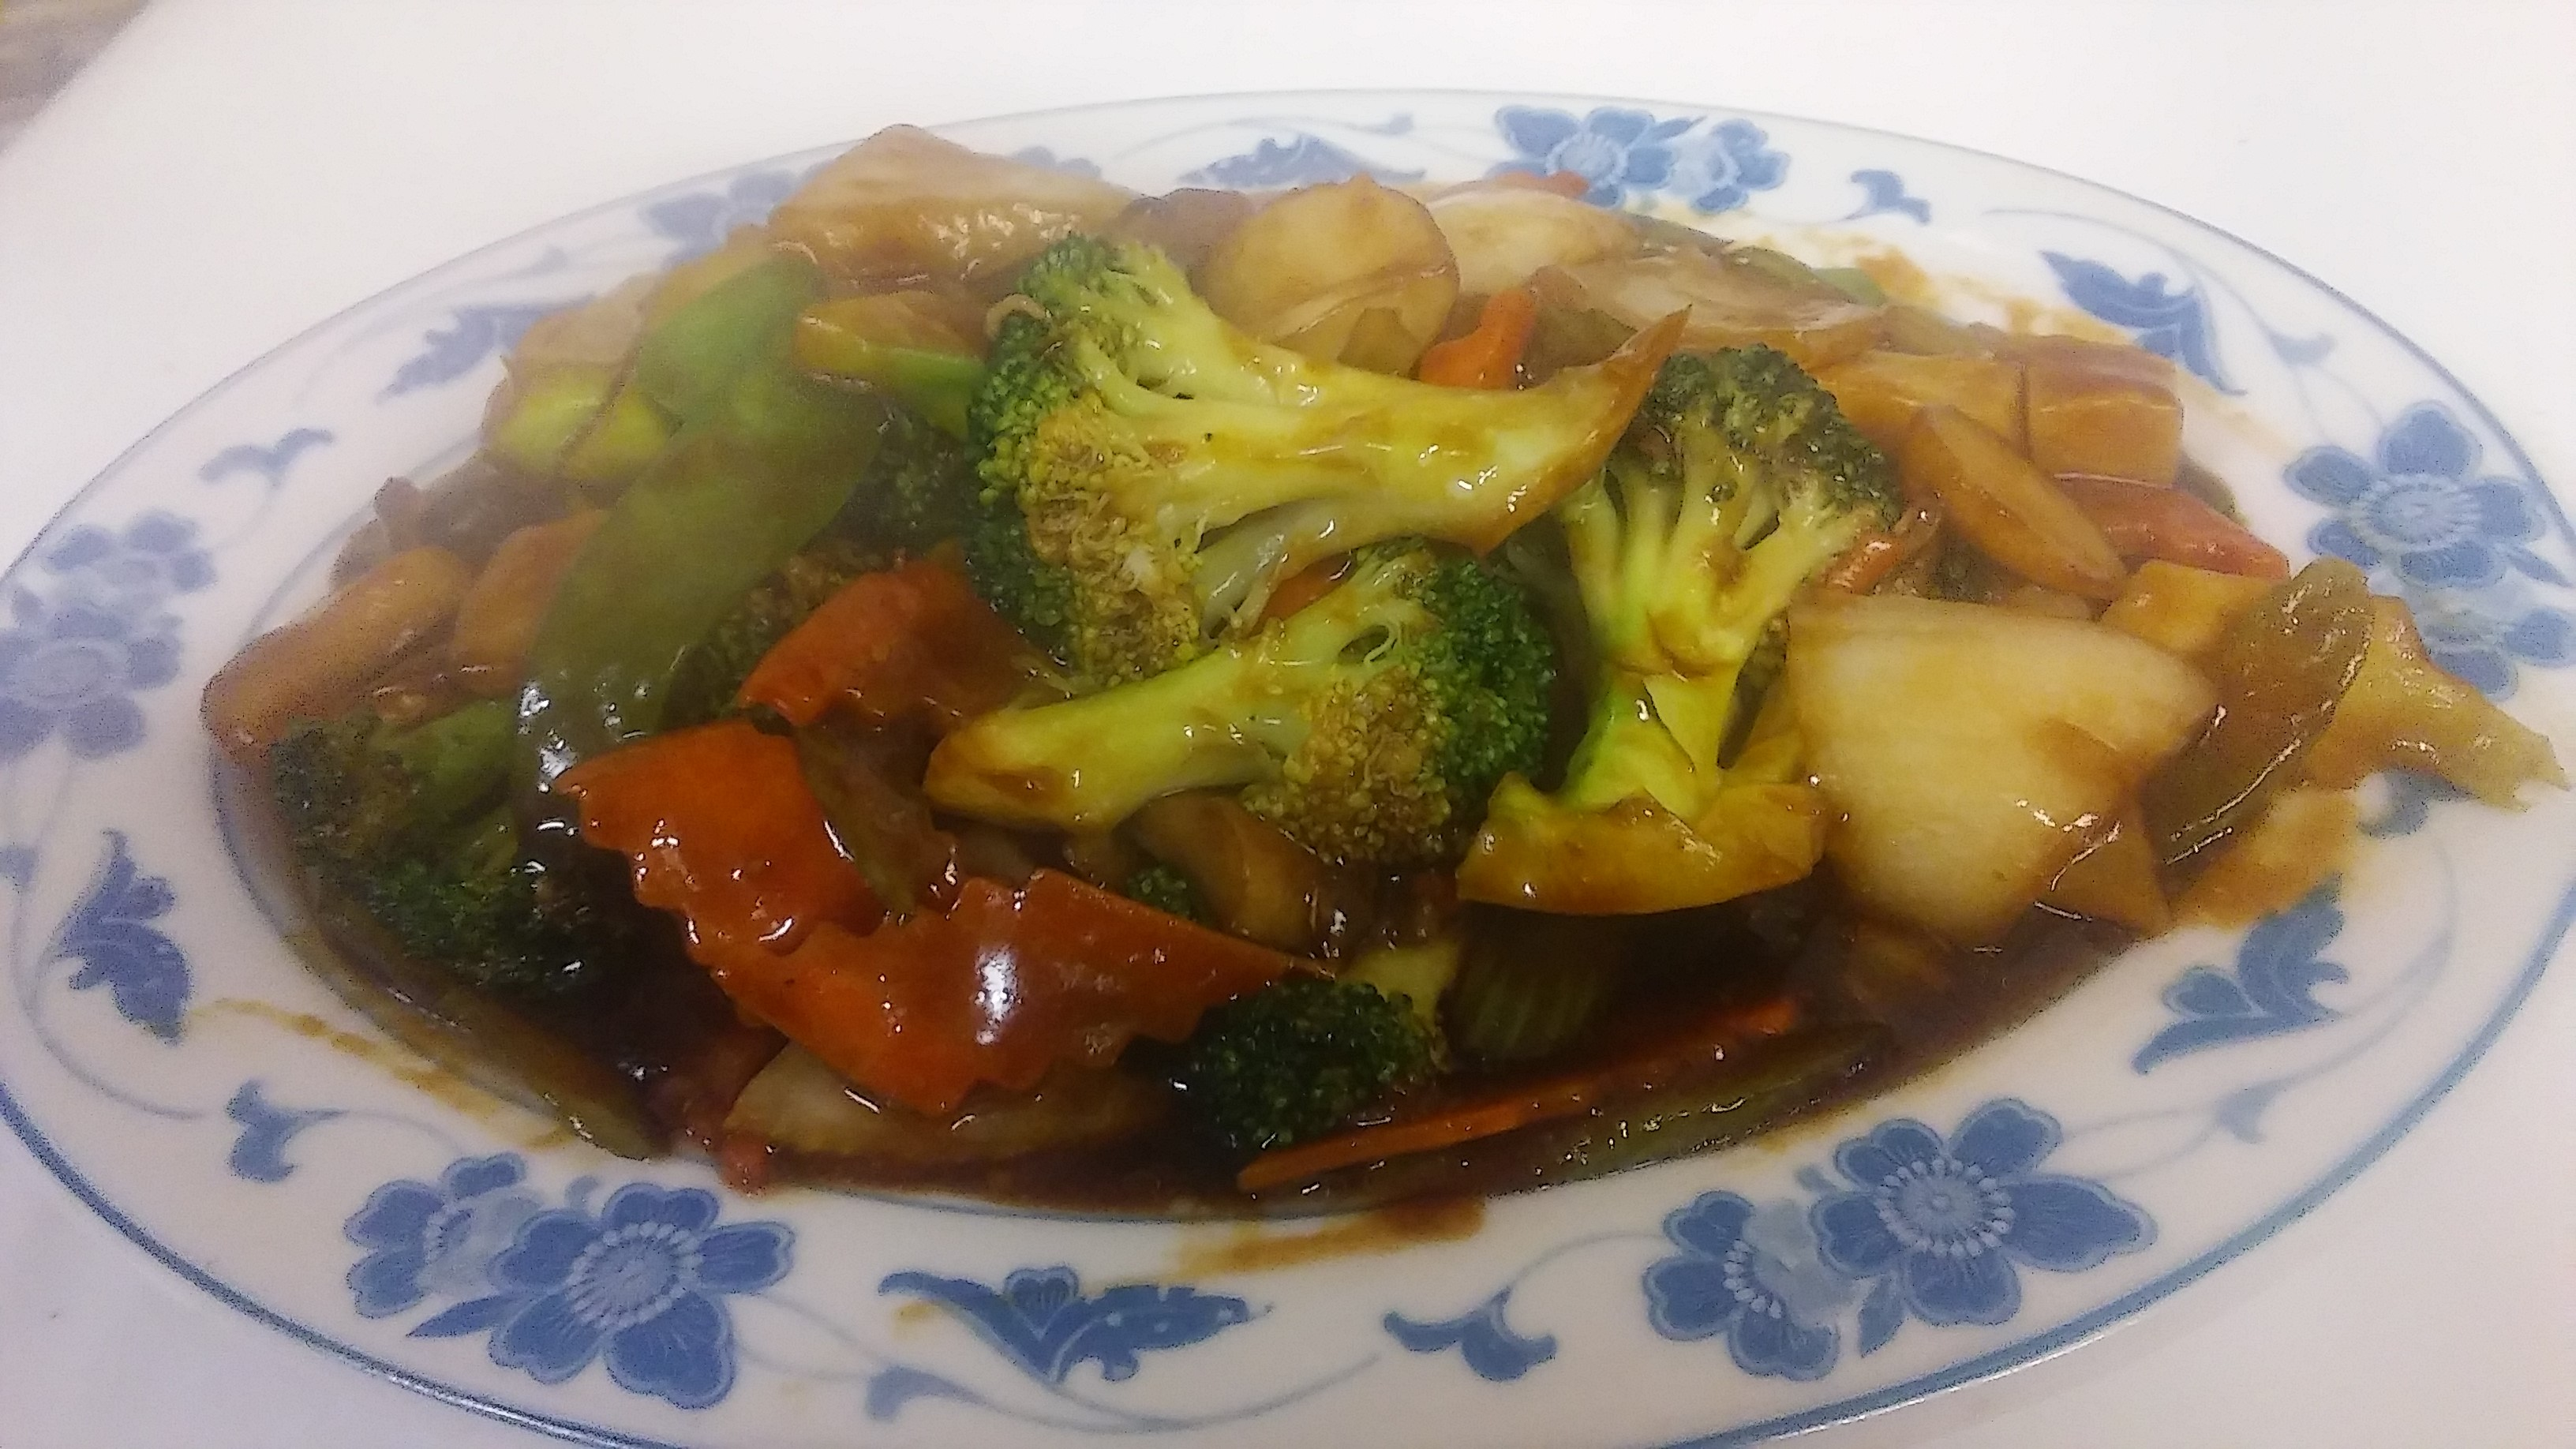 22. Mixed Vegetables Image